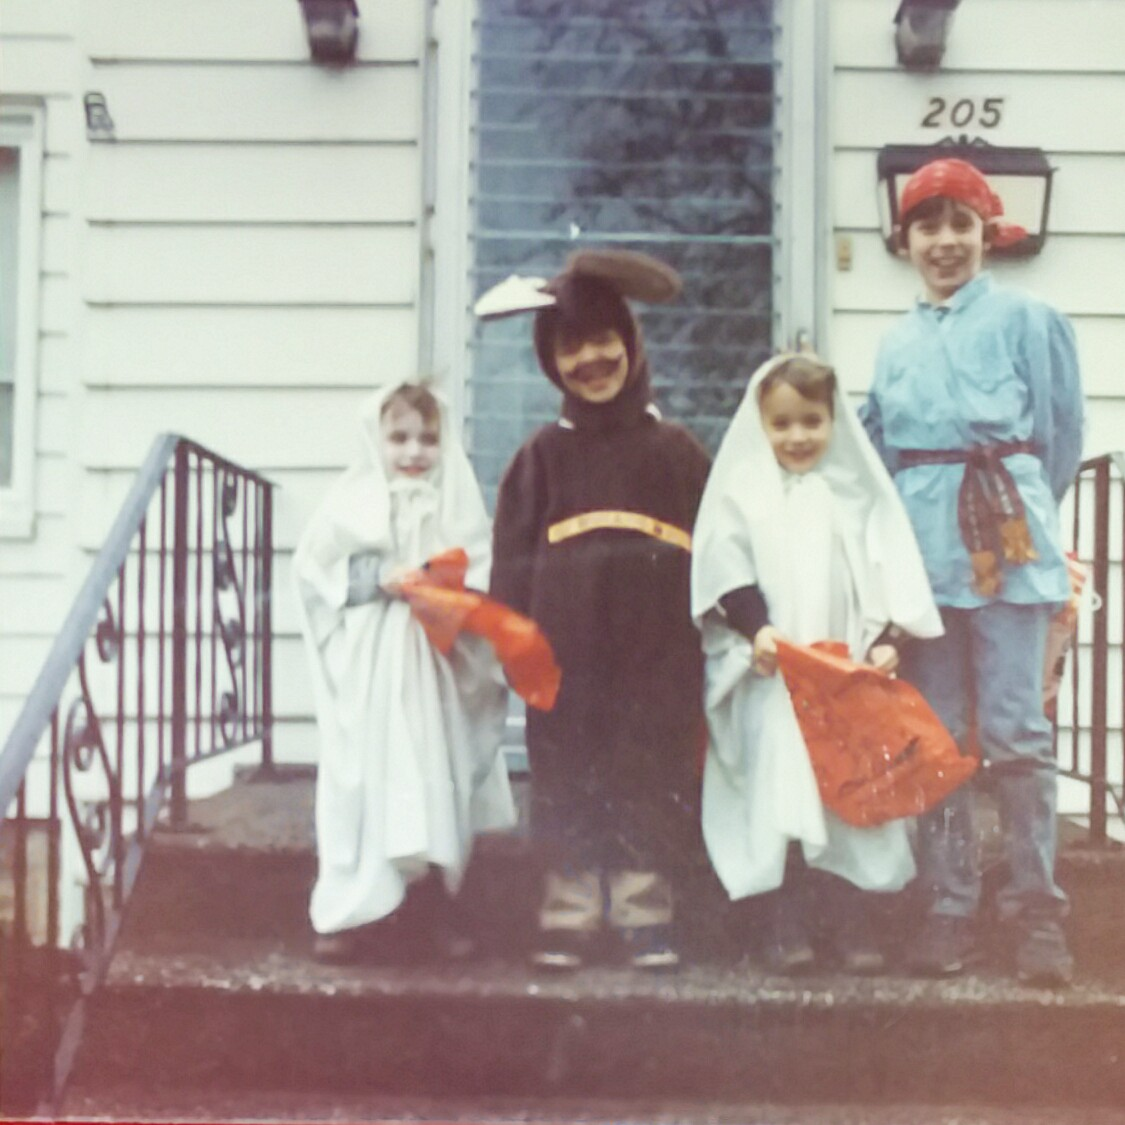 4 Children dressed up for Halloween in the 1980s